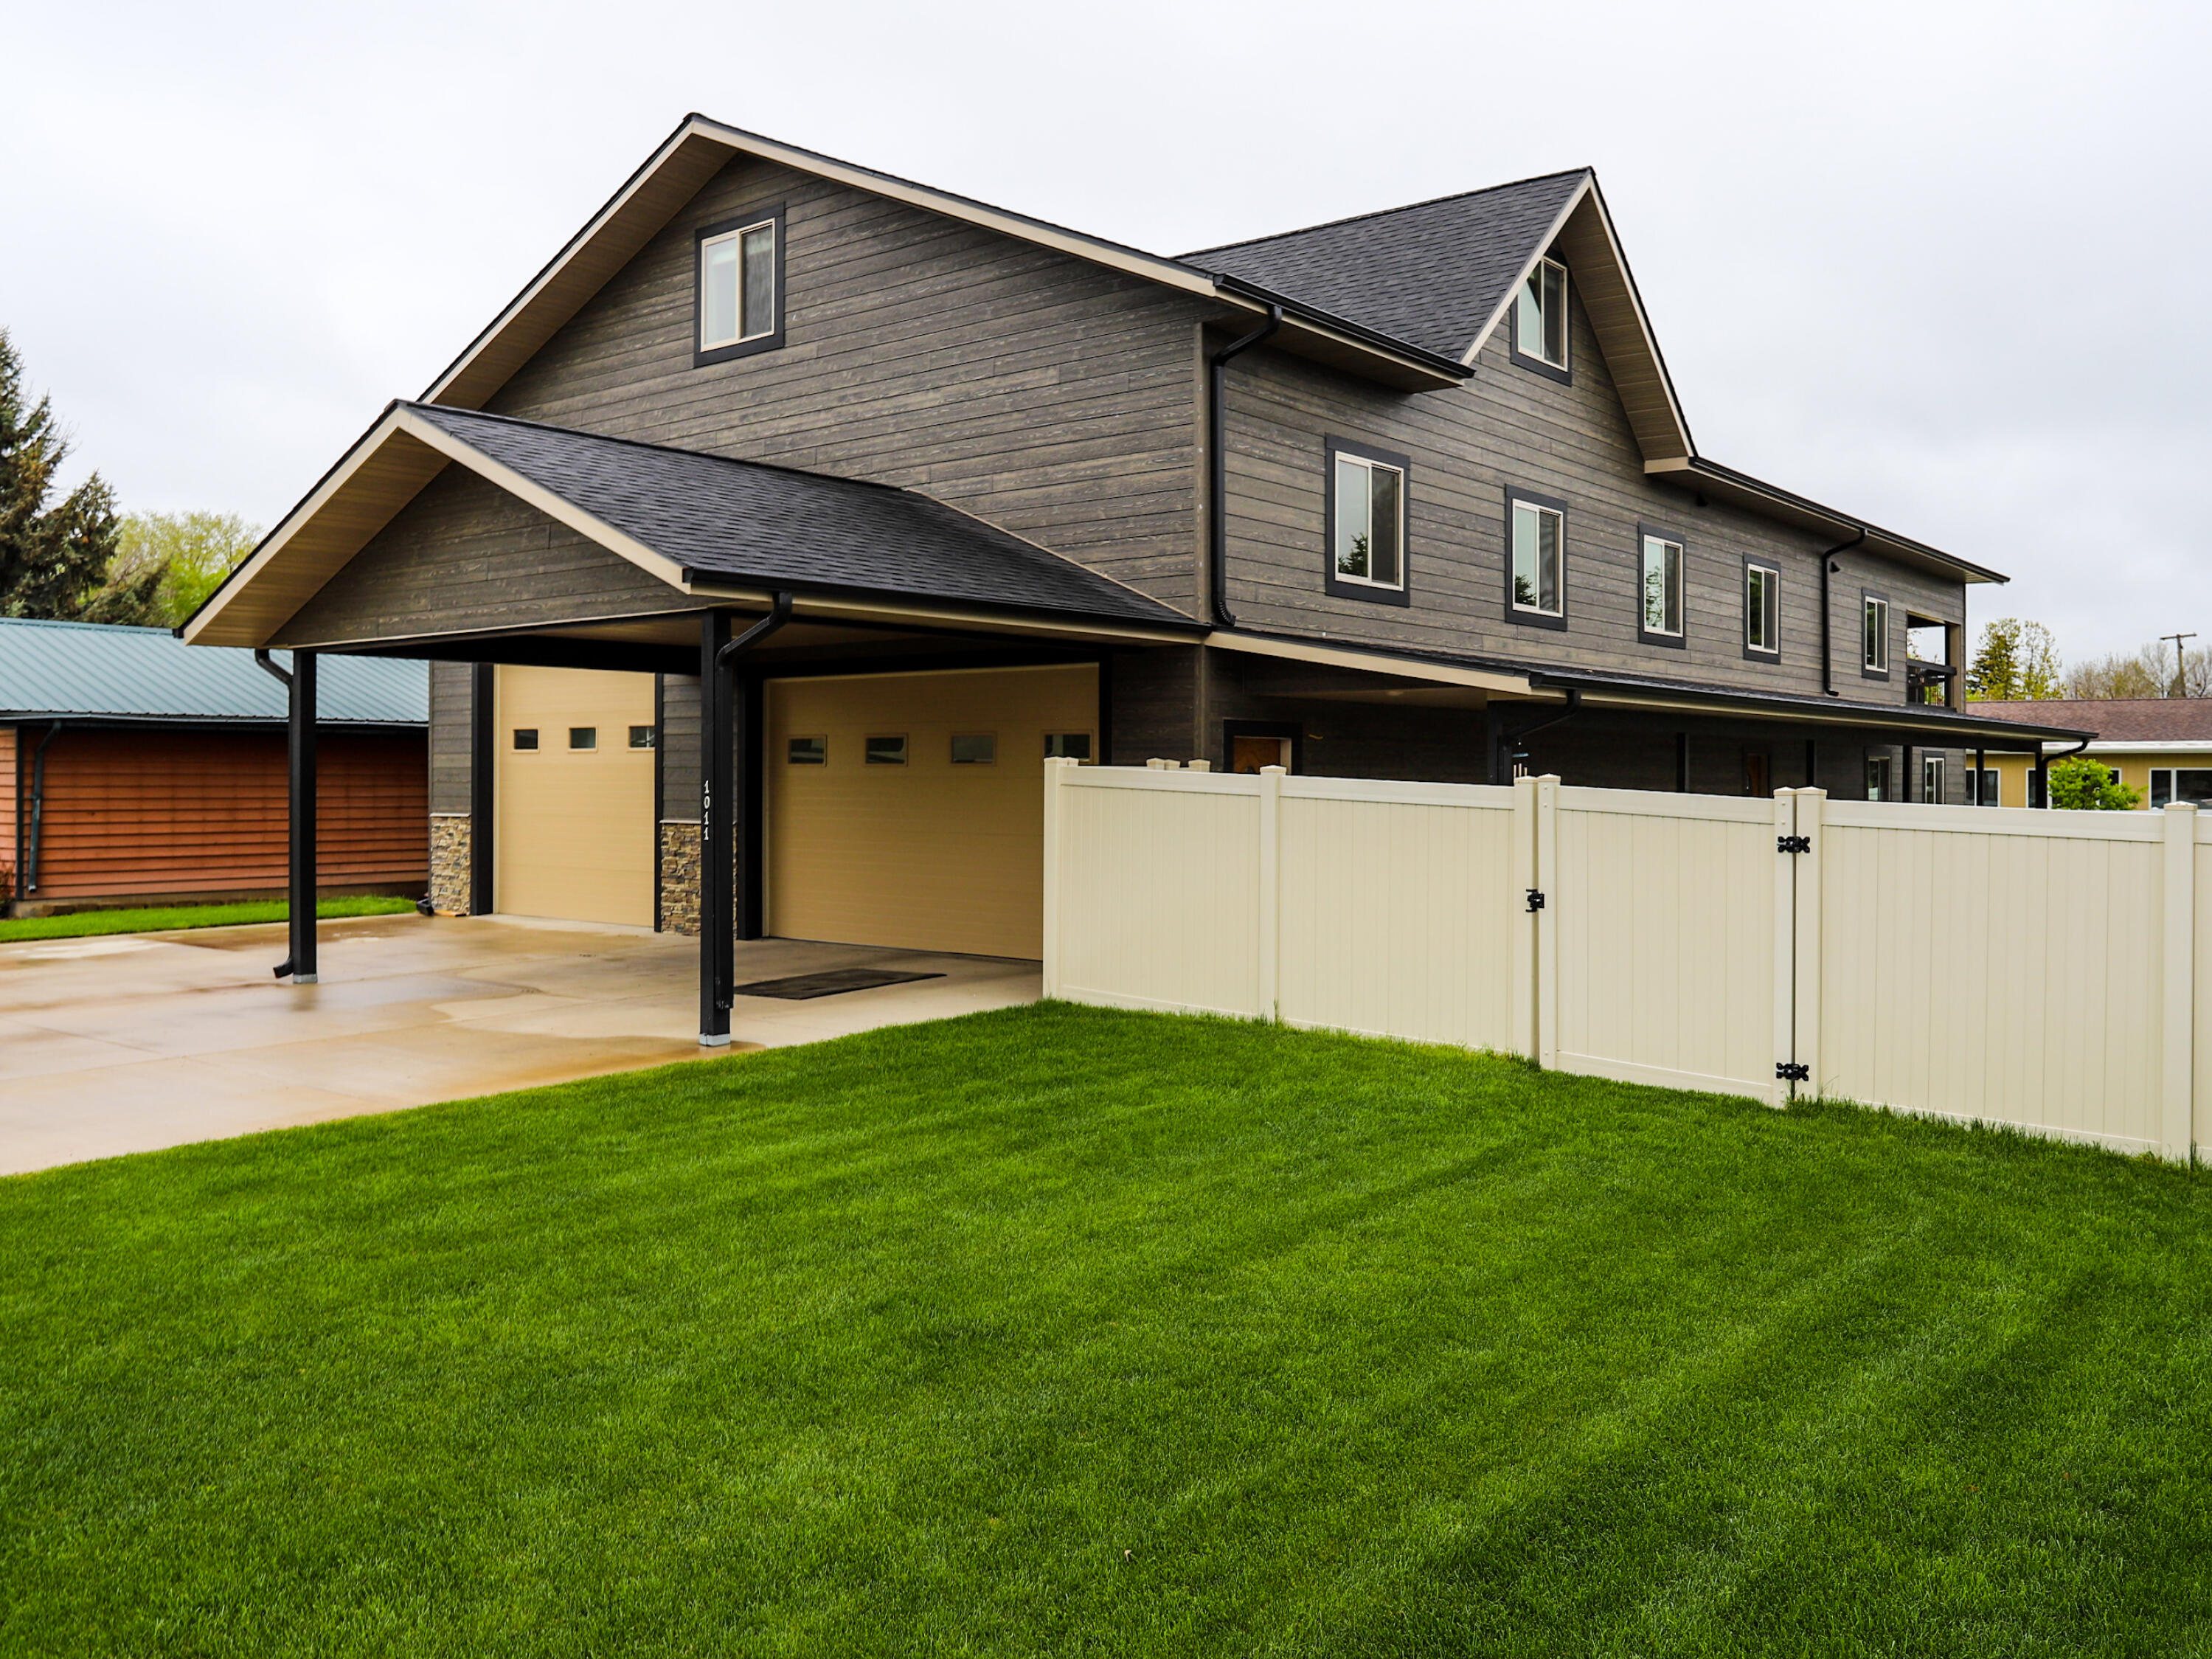 """Built in 2018 this Fox Farm home features 4 bedrooms, 3 full baths, & boasts over 3,000sqft. of living space. Talk about a man cave this home has the GARAGE/SHOP of your dreams, no need to keep your motor home outside anymore! In this space you are able to store your motor home, 4 full size vehicles, plus extra space for so much MORE! Inside the home enjoy the privacy of the master bedroom located on its own floor with its own en-suite bathroom & 2 walk in closets. The main living area is accompanied by enormous vaulted ceilings, a wide open concept with a modern design, & a beautiful walk out patio creating a perfect entertainment space. Featured on the main floor is a large bedroom with its own bathroom, walk in closet, & complete privacy from the rest of the house. This home gives you the """"country feel"""" while still being able to enjoy all the city amenities such as near by entertainment, restaurants, parks & schools. Don't miss out, Call Ambyr Rain Kleinholz at 406.781.2003 or your real estate professional to schedule a showing."""